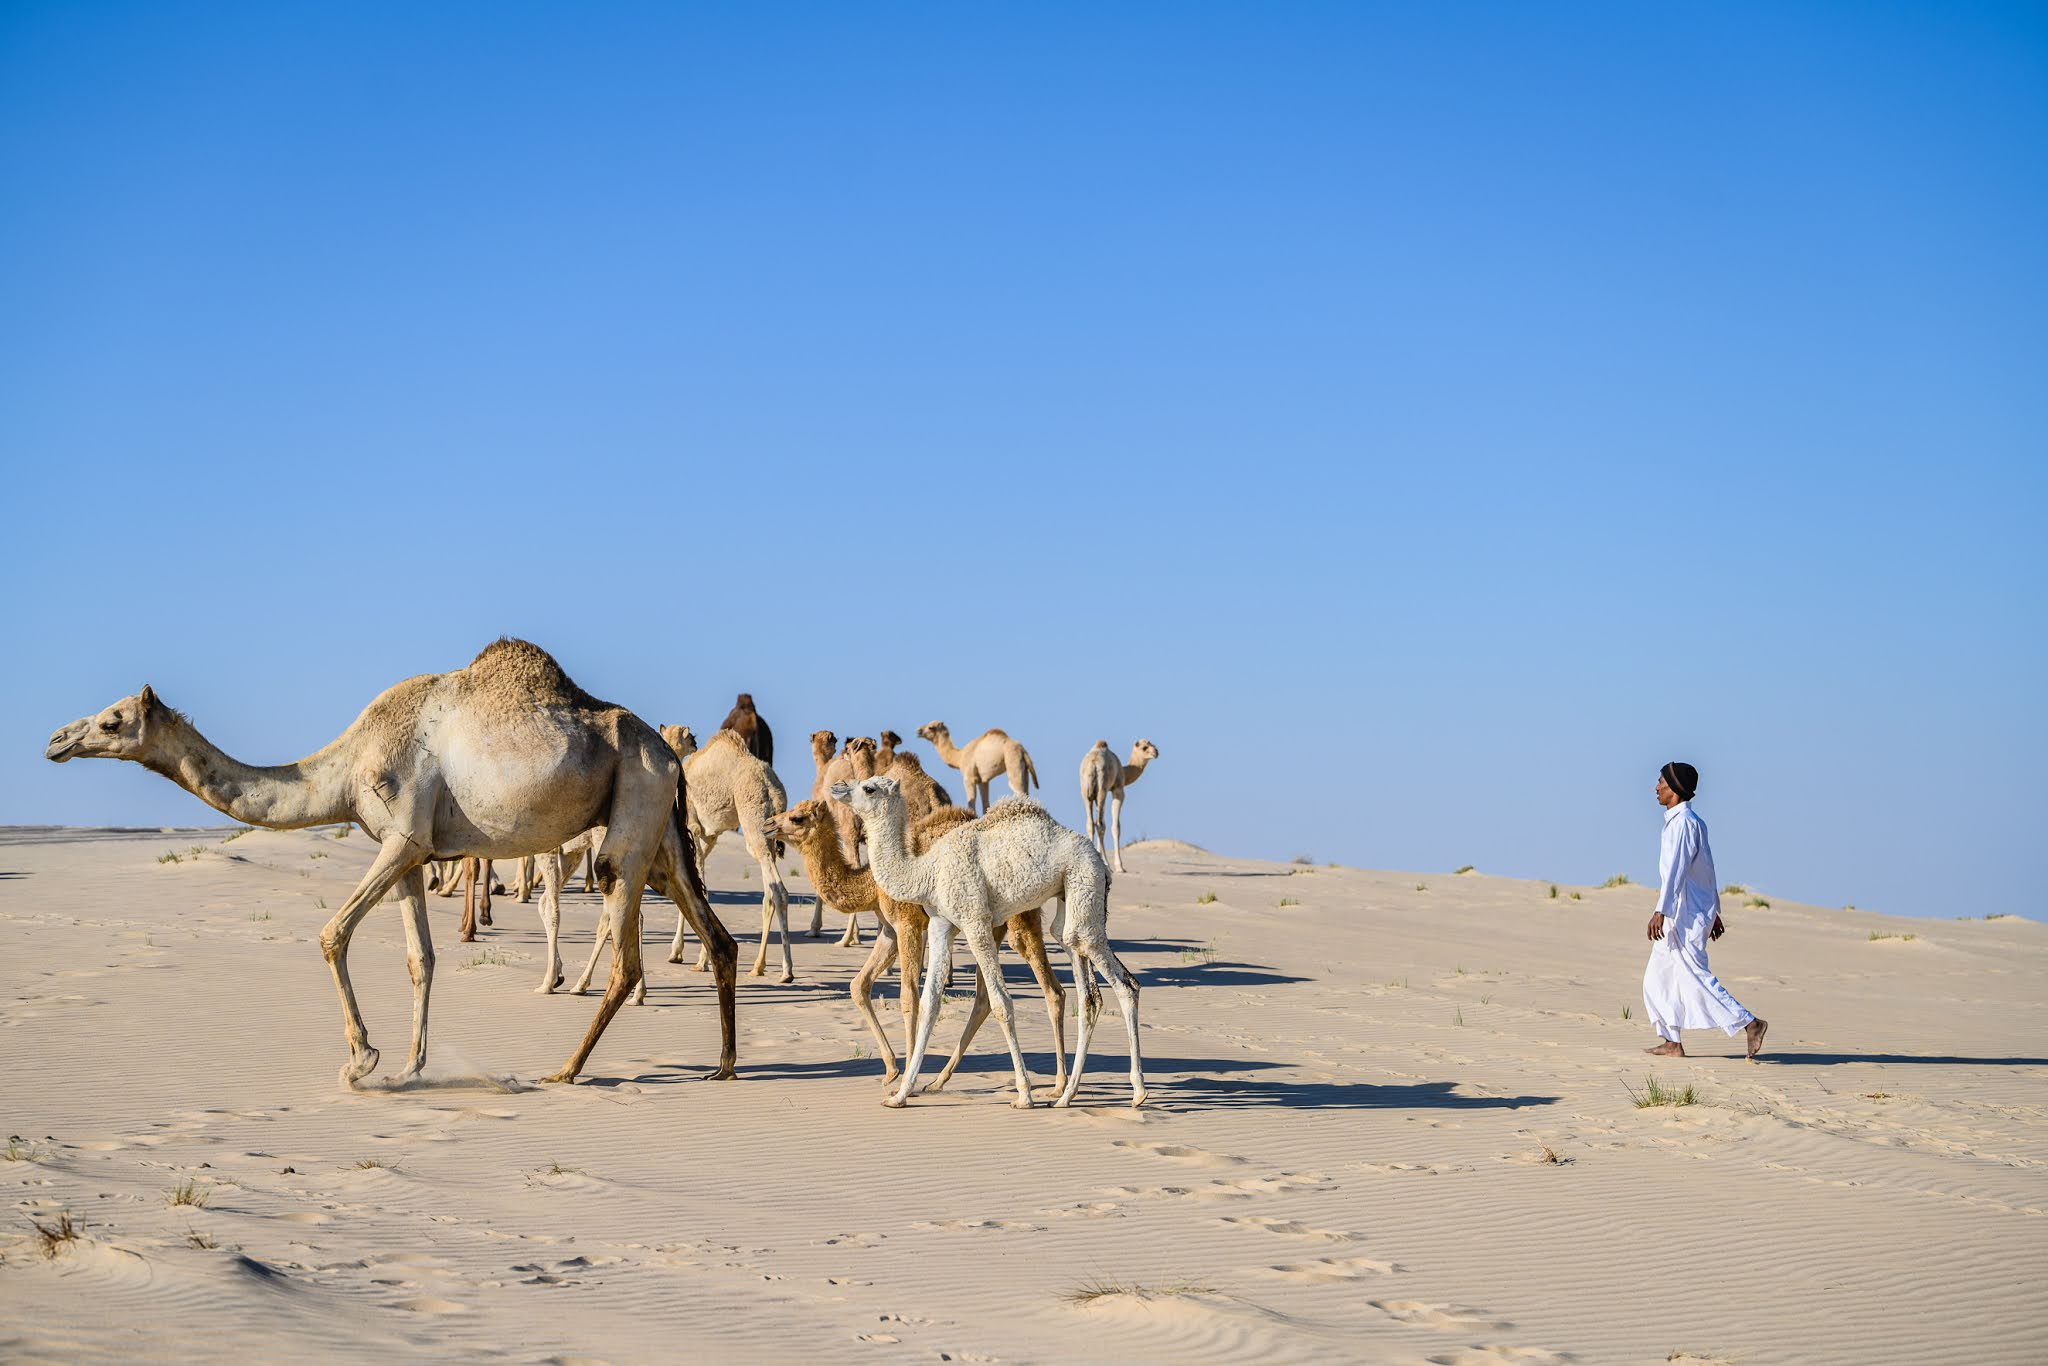 Qatar promotes heritage and culture by releasing photos of camel calves